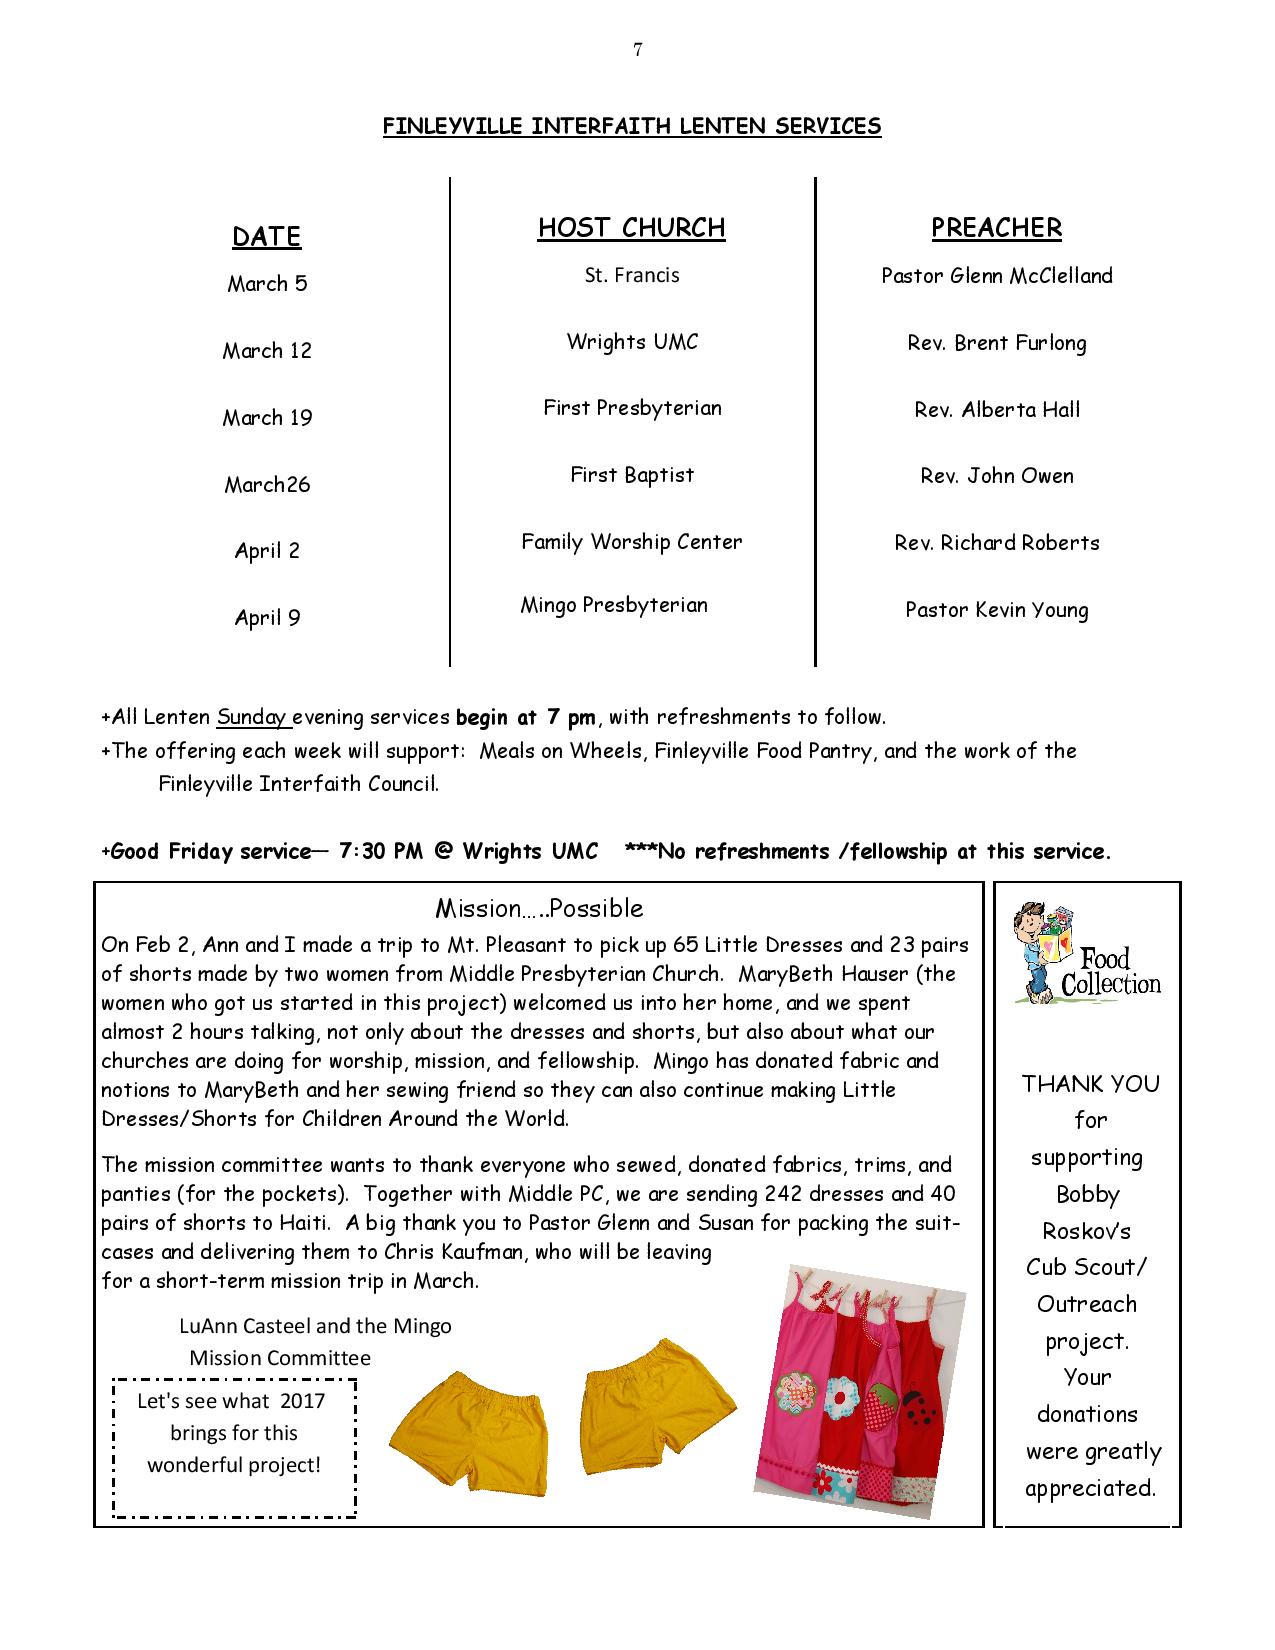 MARCH NEWSLETTER (1)-page-007.jpg